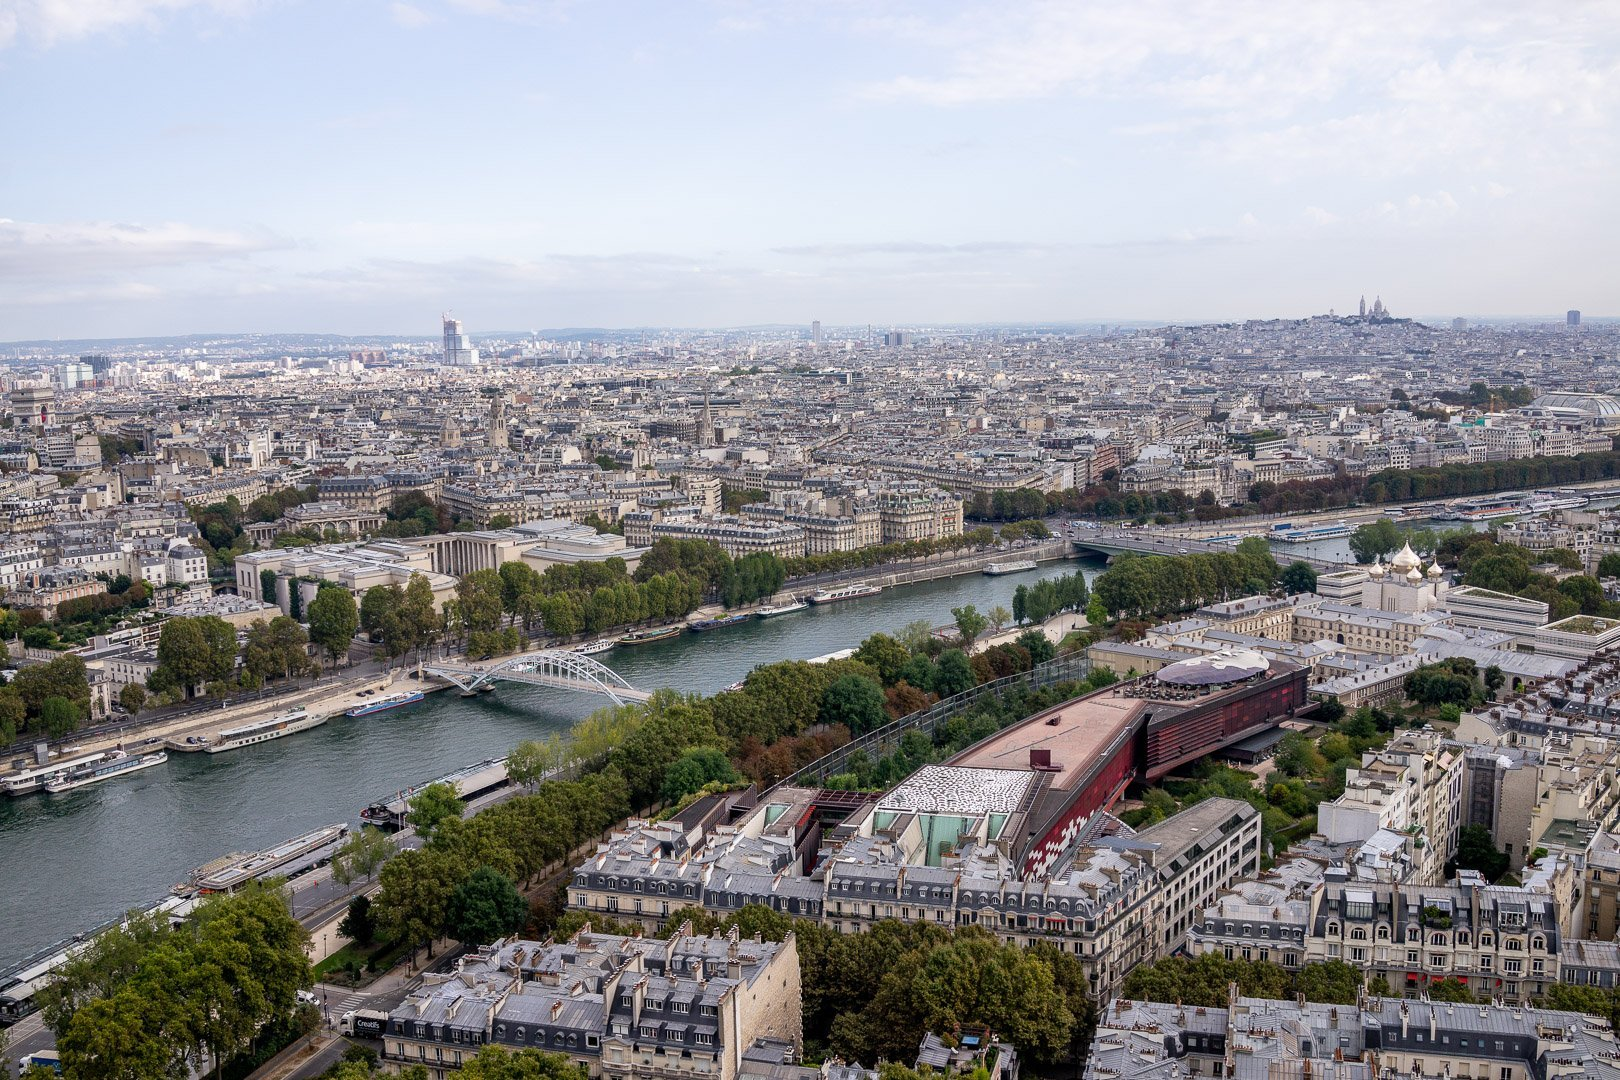 Views over Paris as seen from the Eiffel Tower